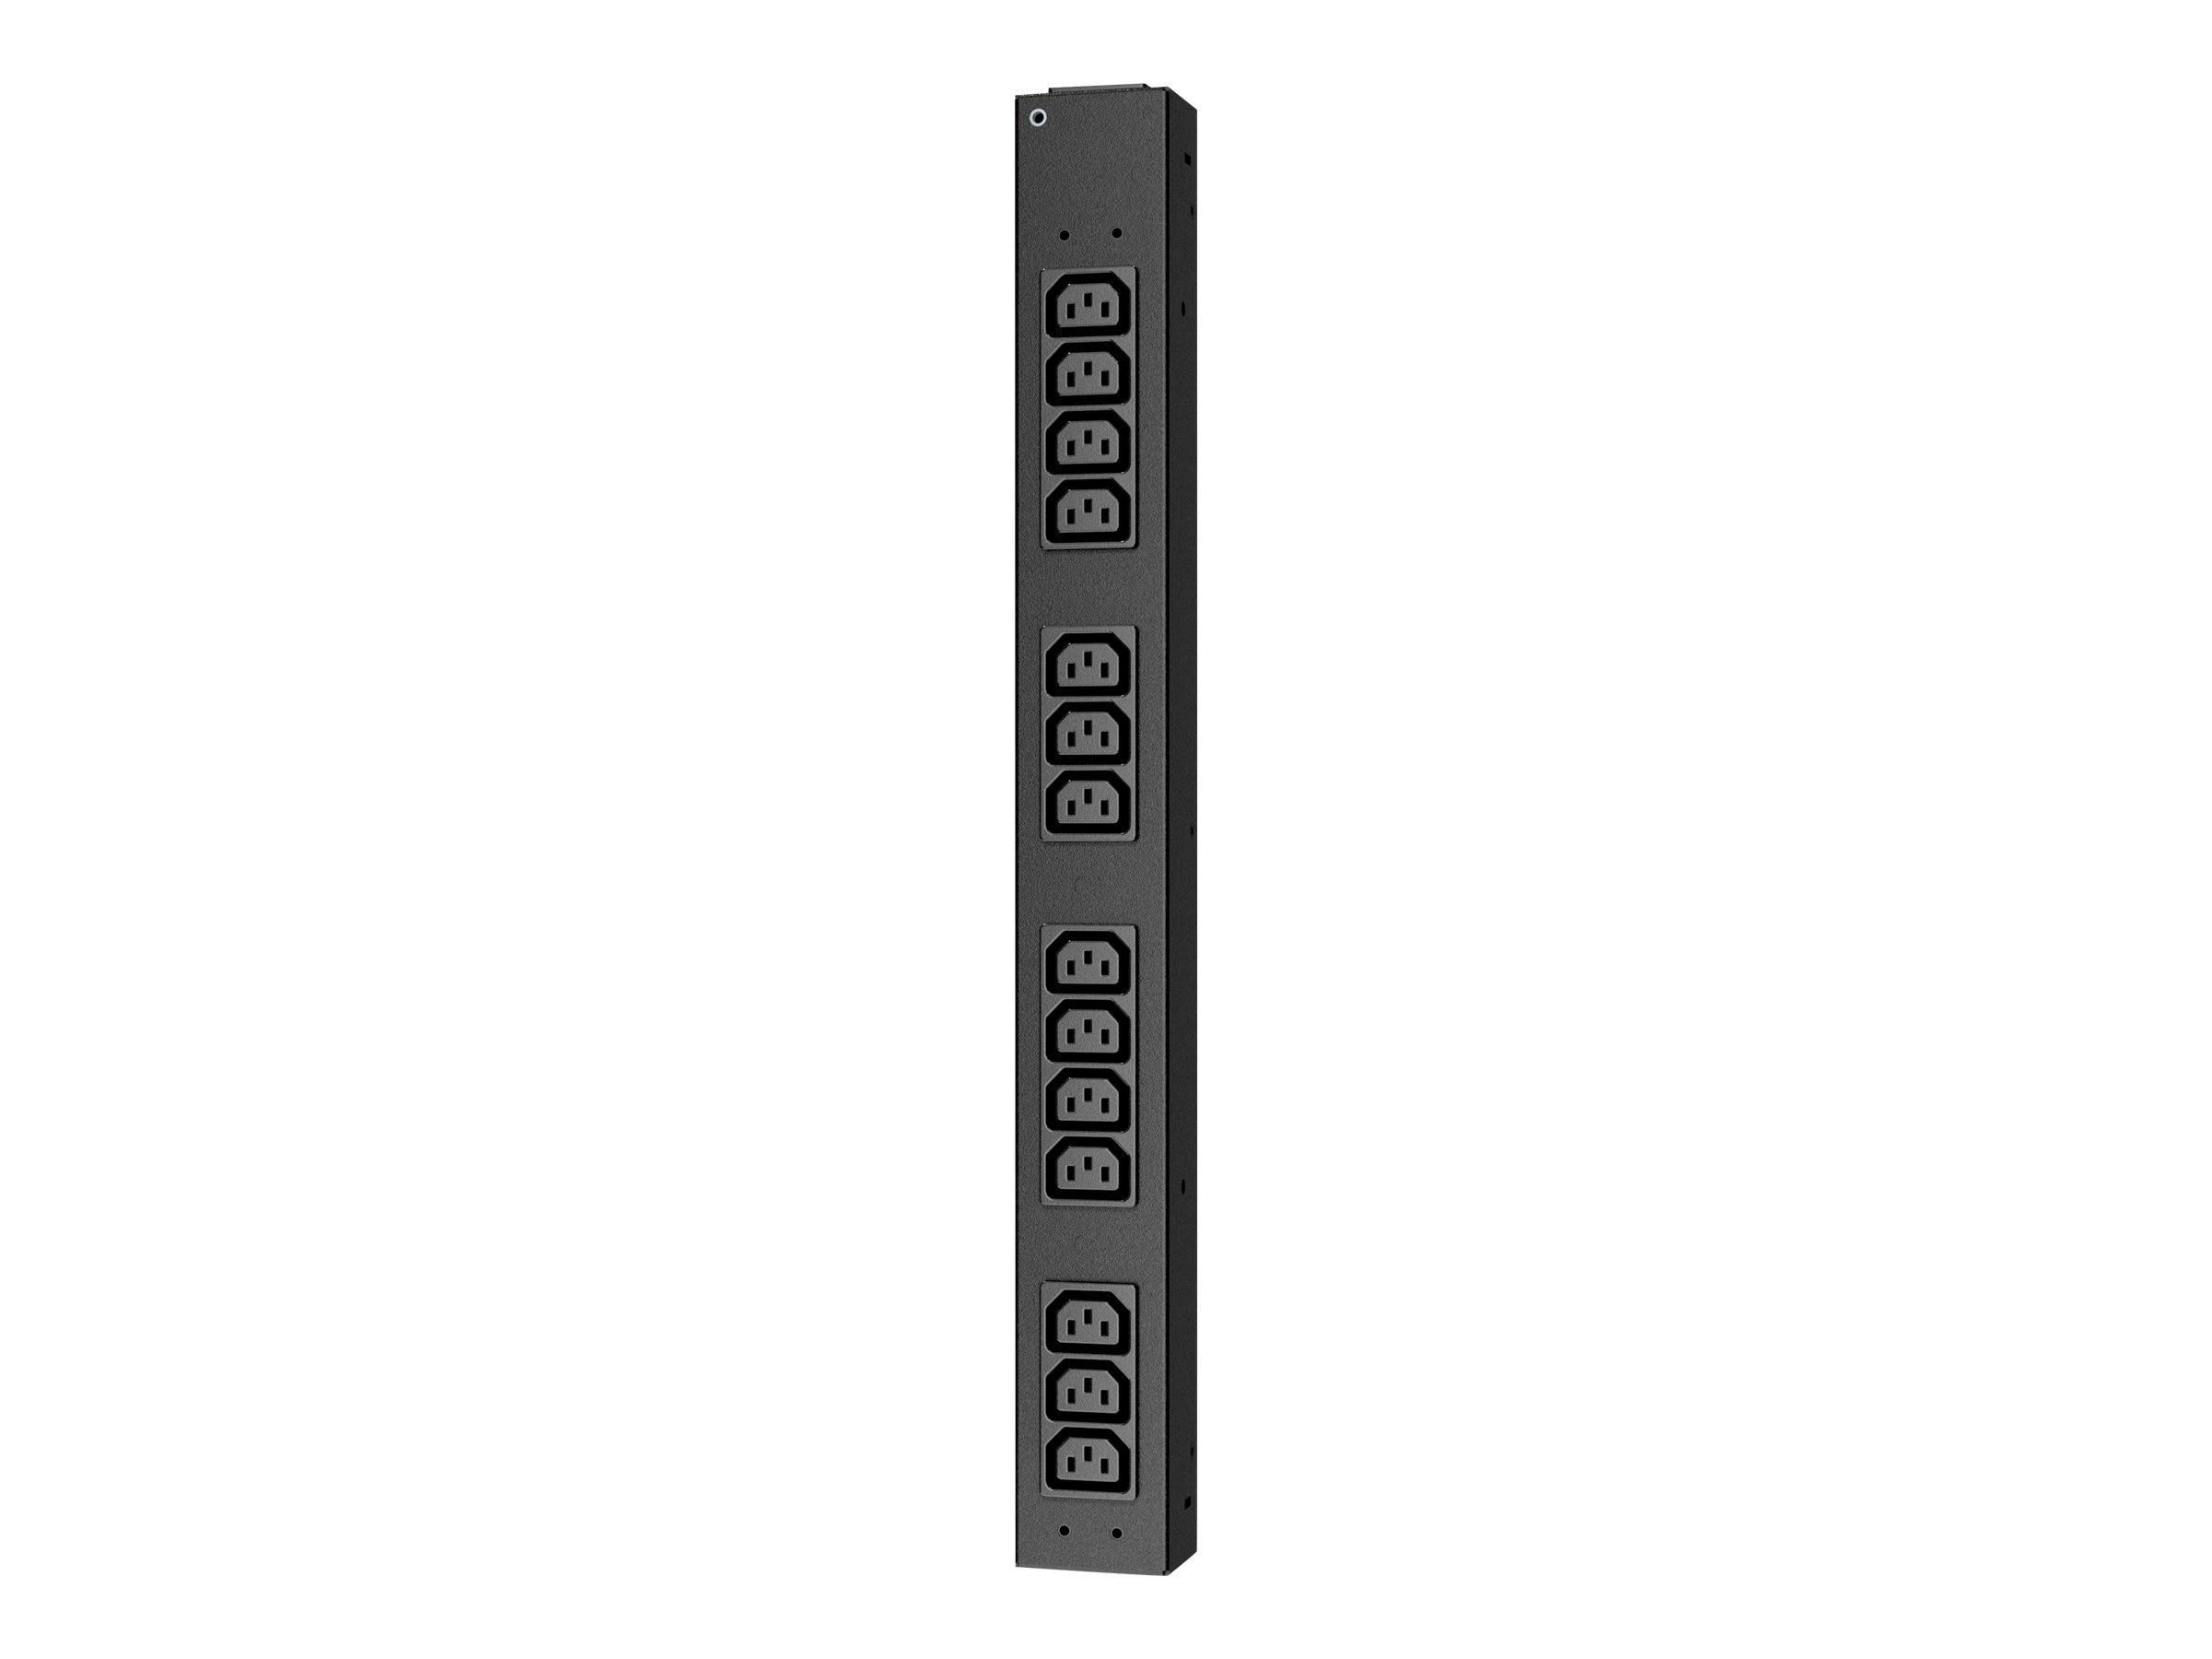 APC Rack PDU Basic Half-Height 100-240V 20A, 220-240V 16A (14) C13